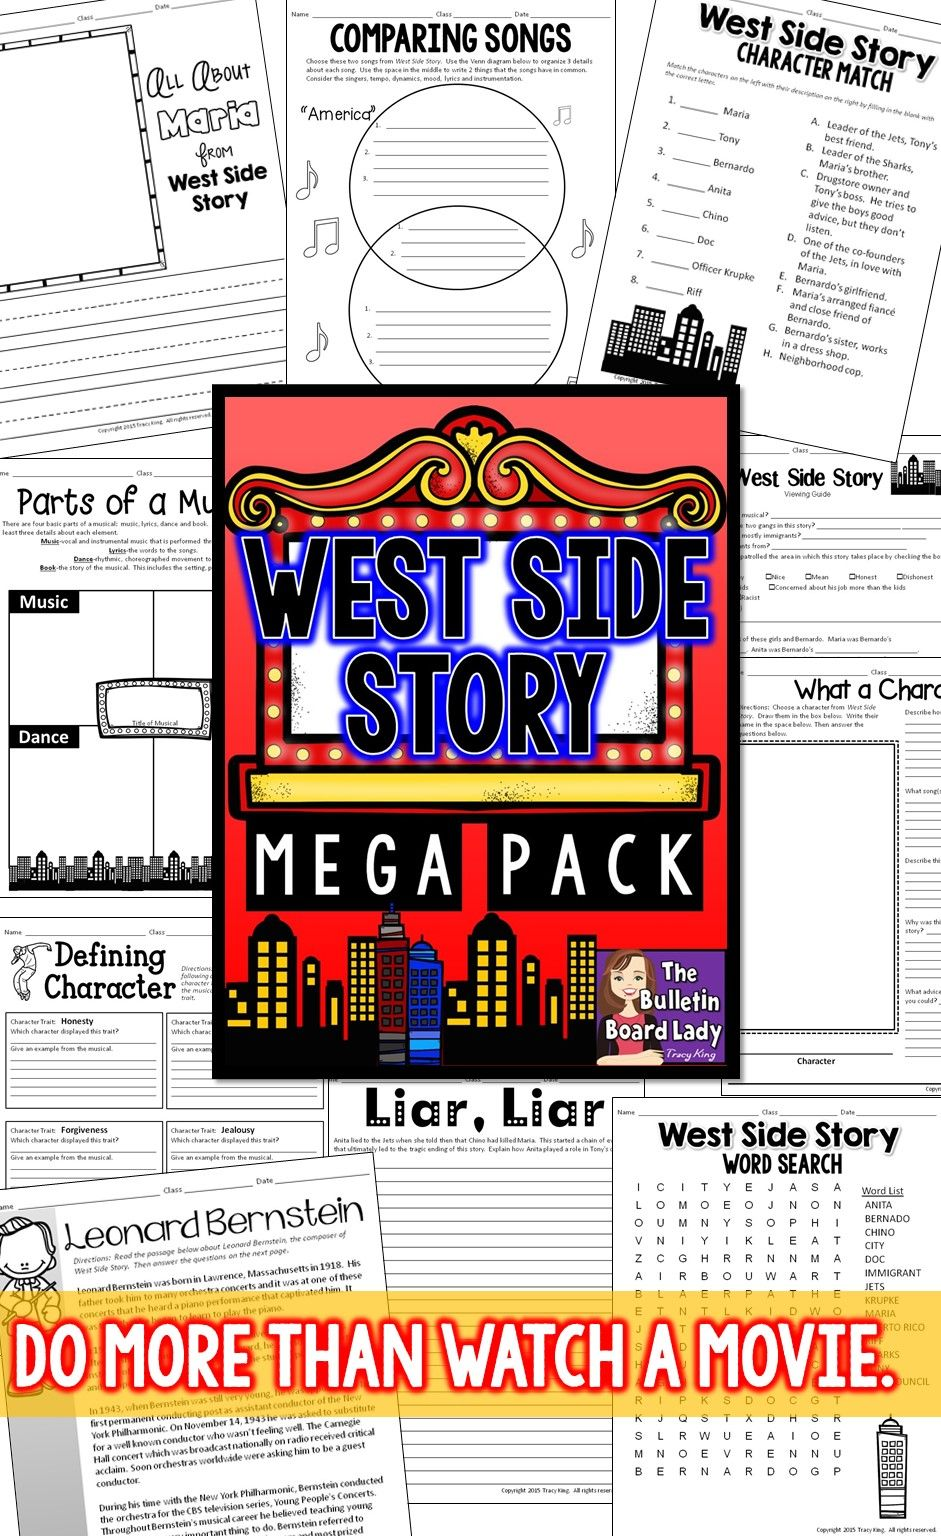 worksheet West Side Story Worksheet west side story mega pack worksheets students and school this has everything youll need to study the movie musical except video no prep make lesson plans